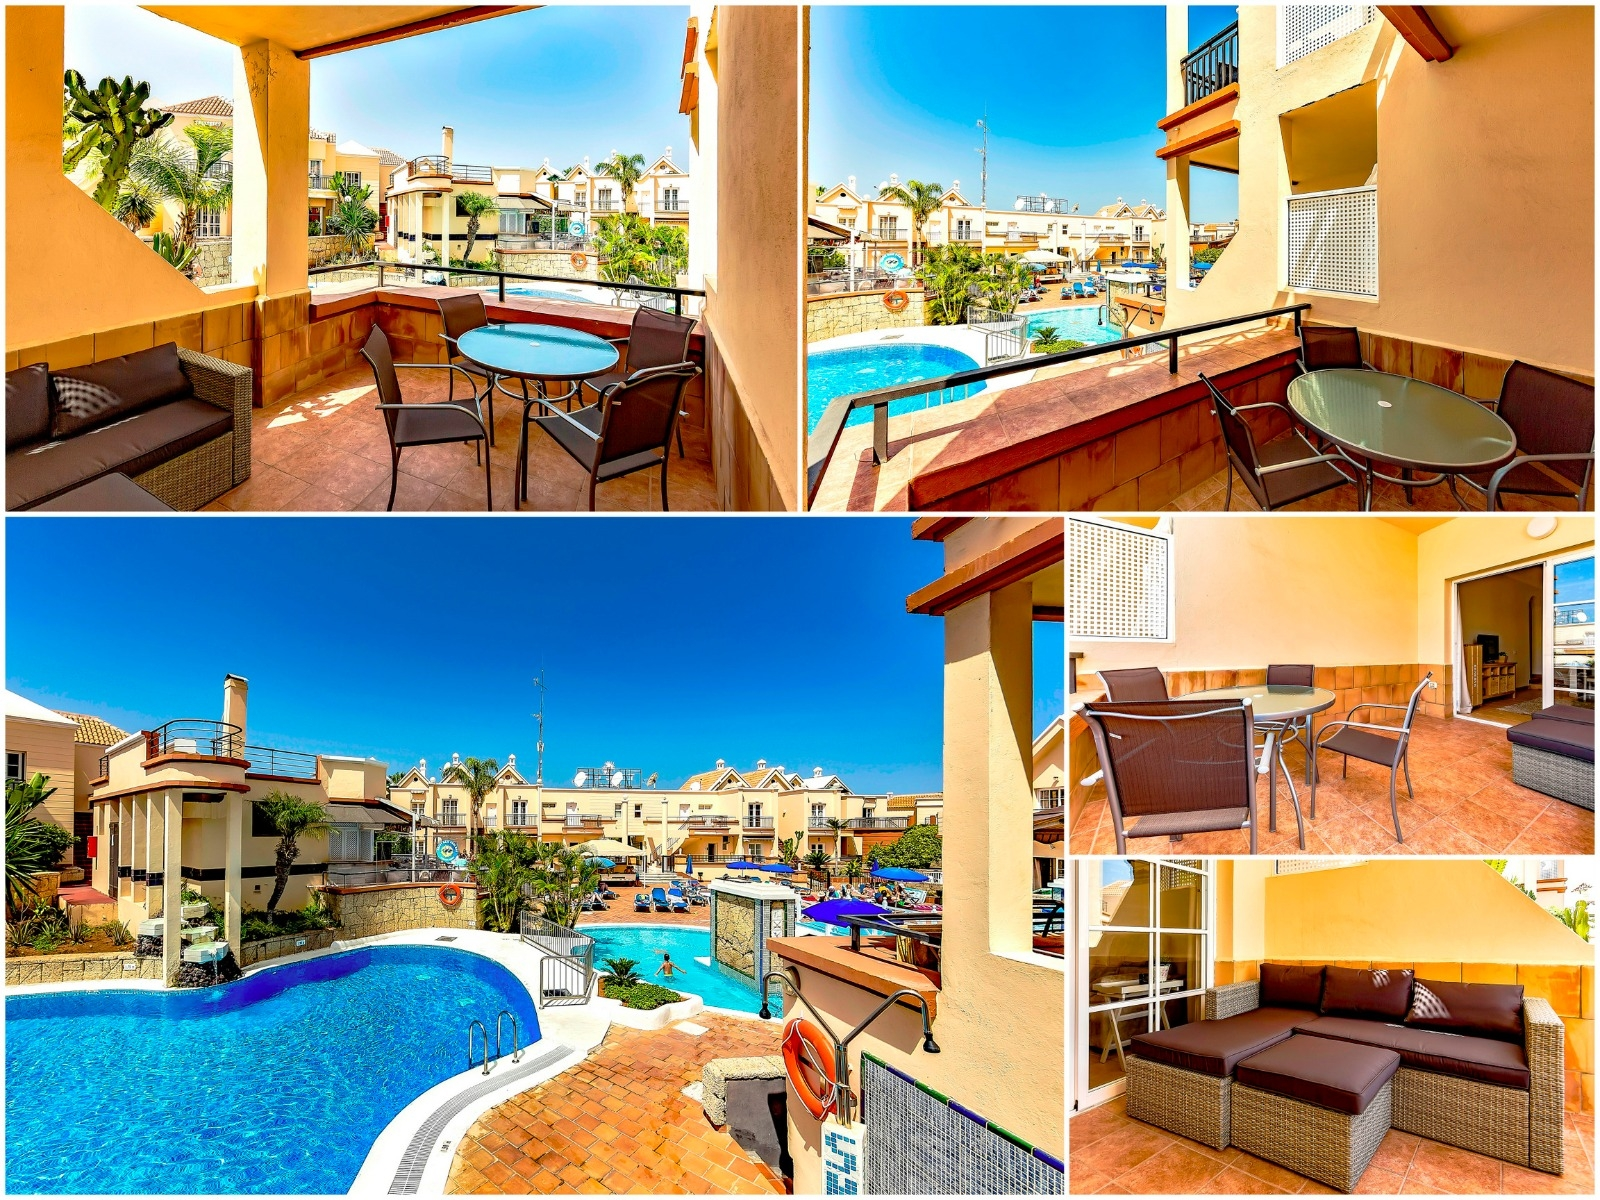 Properties for Sale in Tenerife, Canary Islands, Spain | SylkWayStar Real Estate. 1 bedroom apartment Yucca Park. Image-22569